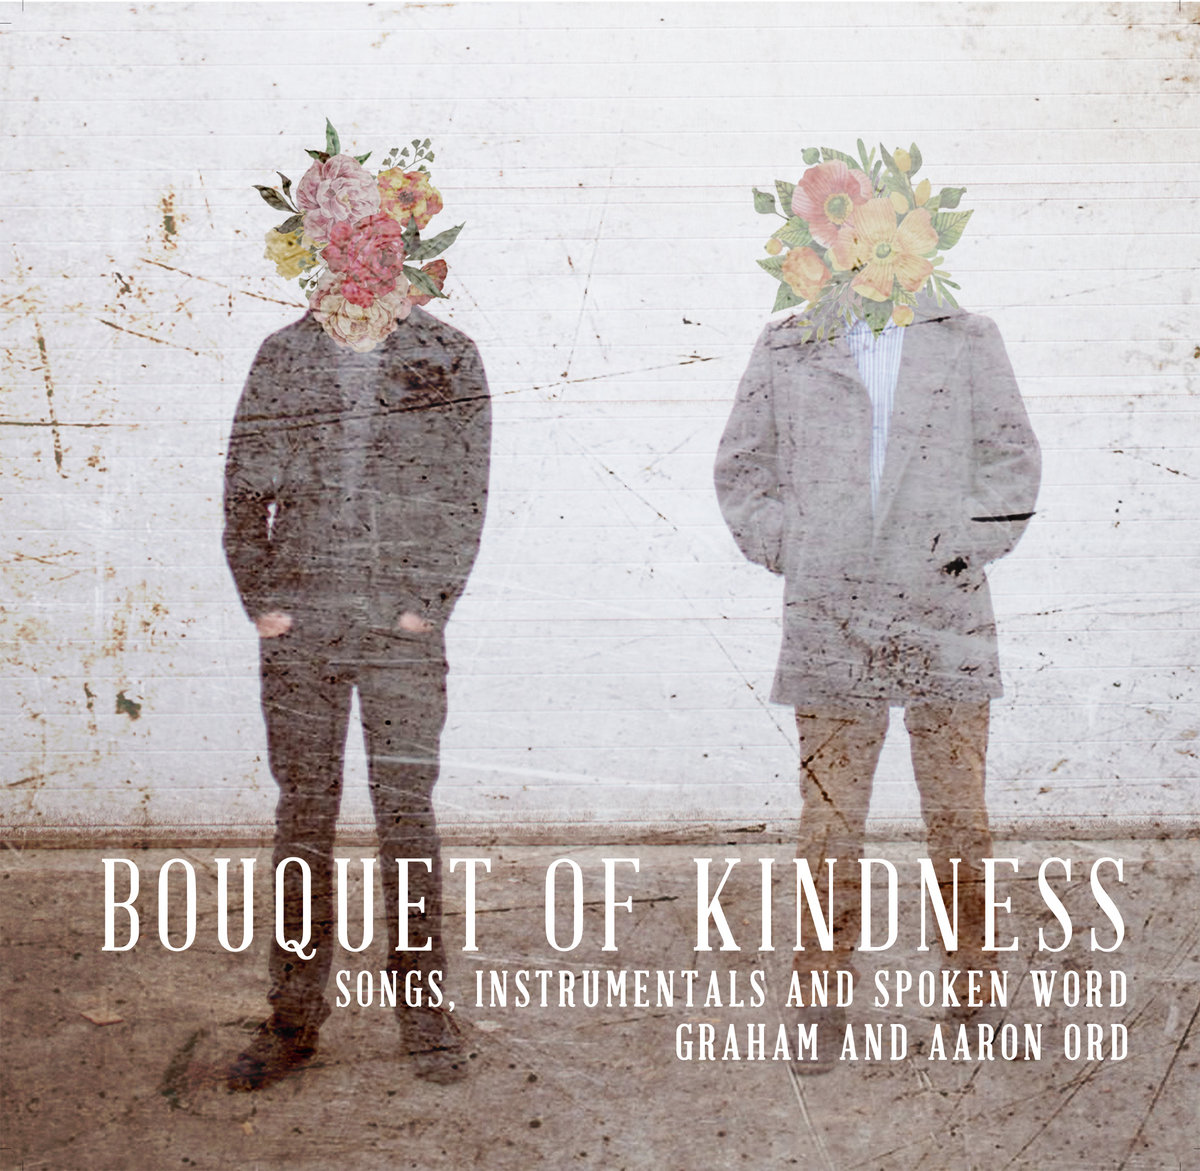 Bouquet of Kindness   Knewsense Records